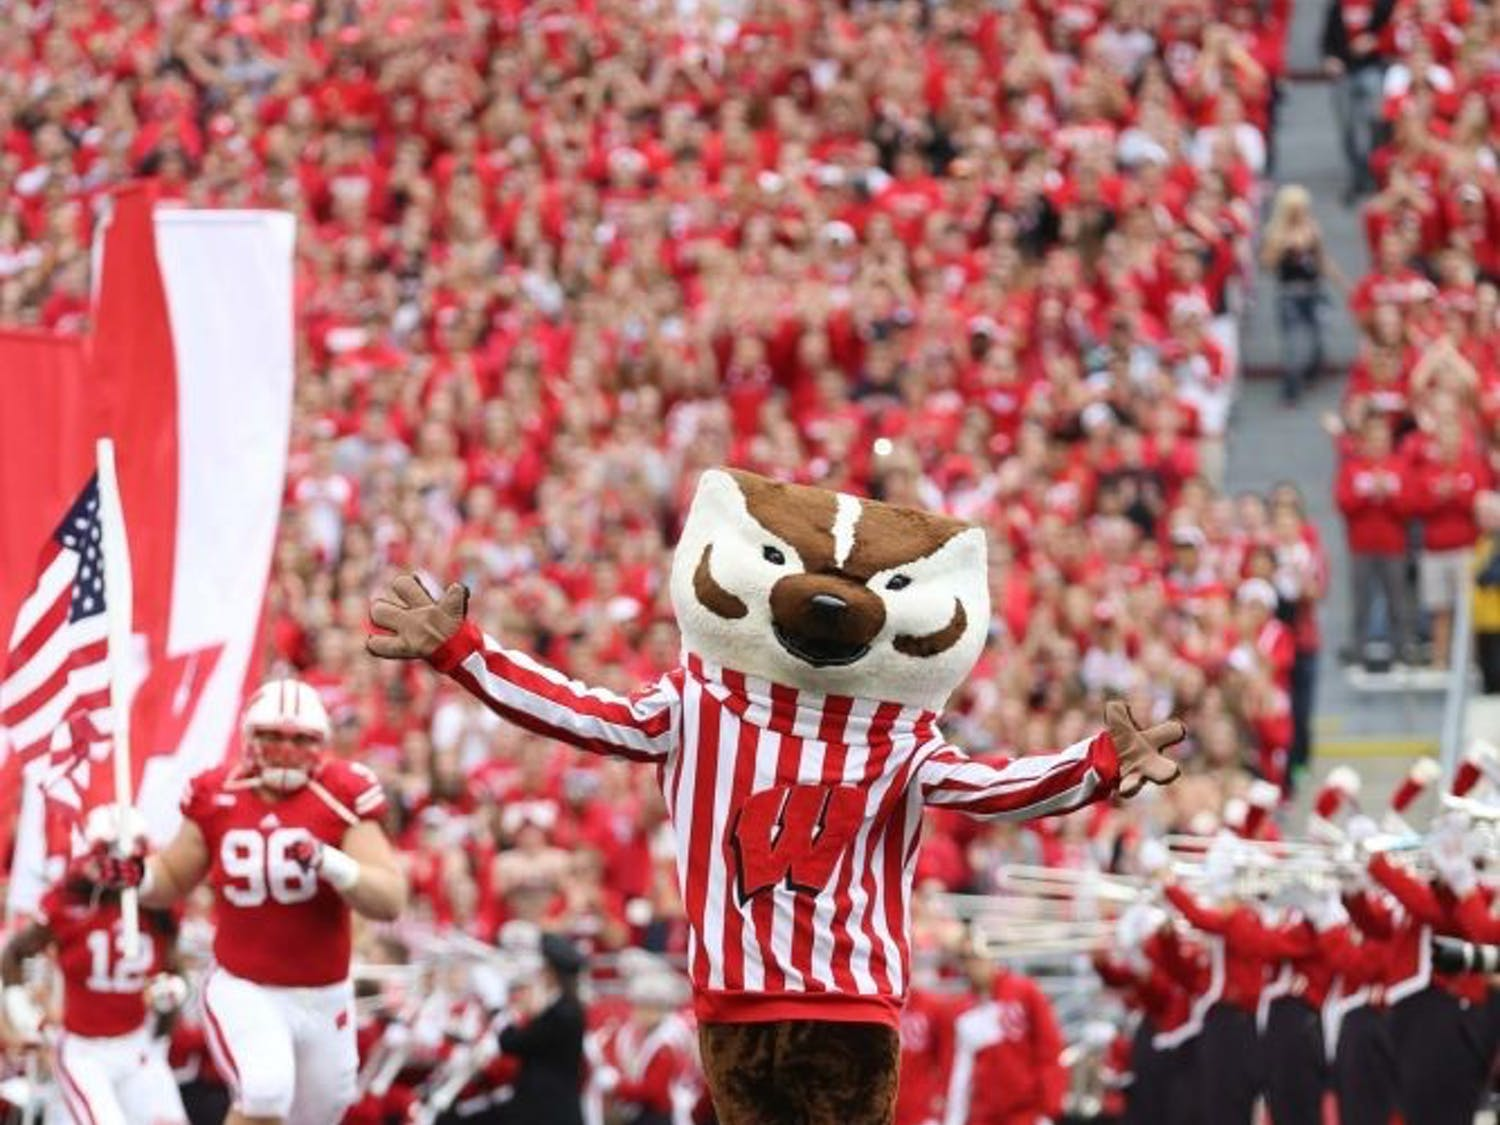 The Wisconsin Badgers defeated Purdue 41-10.